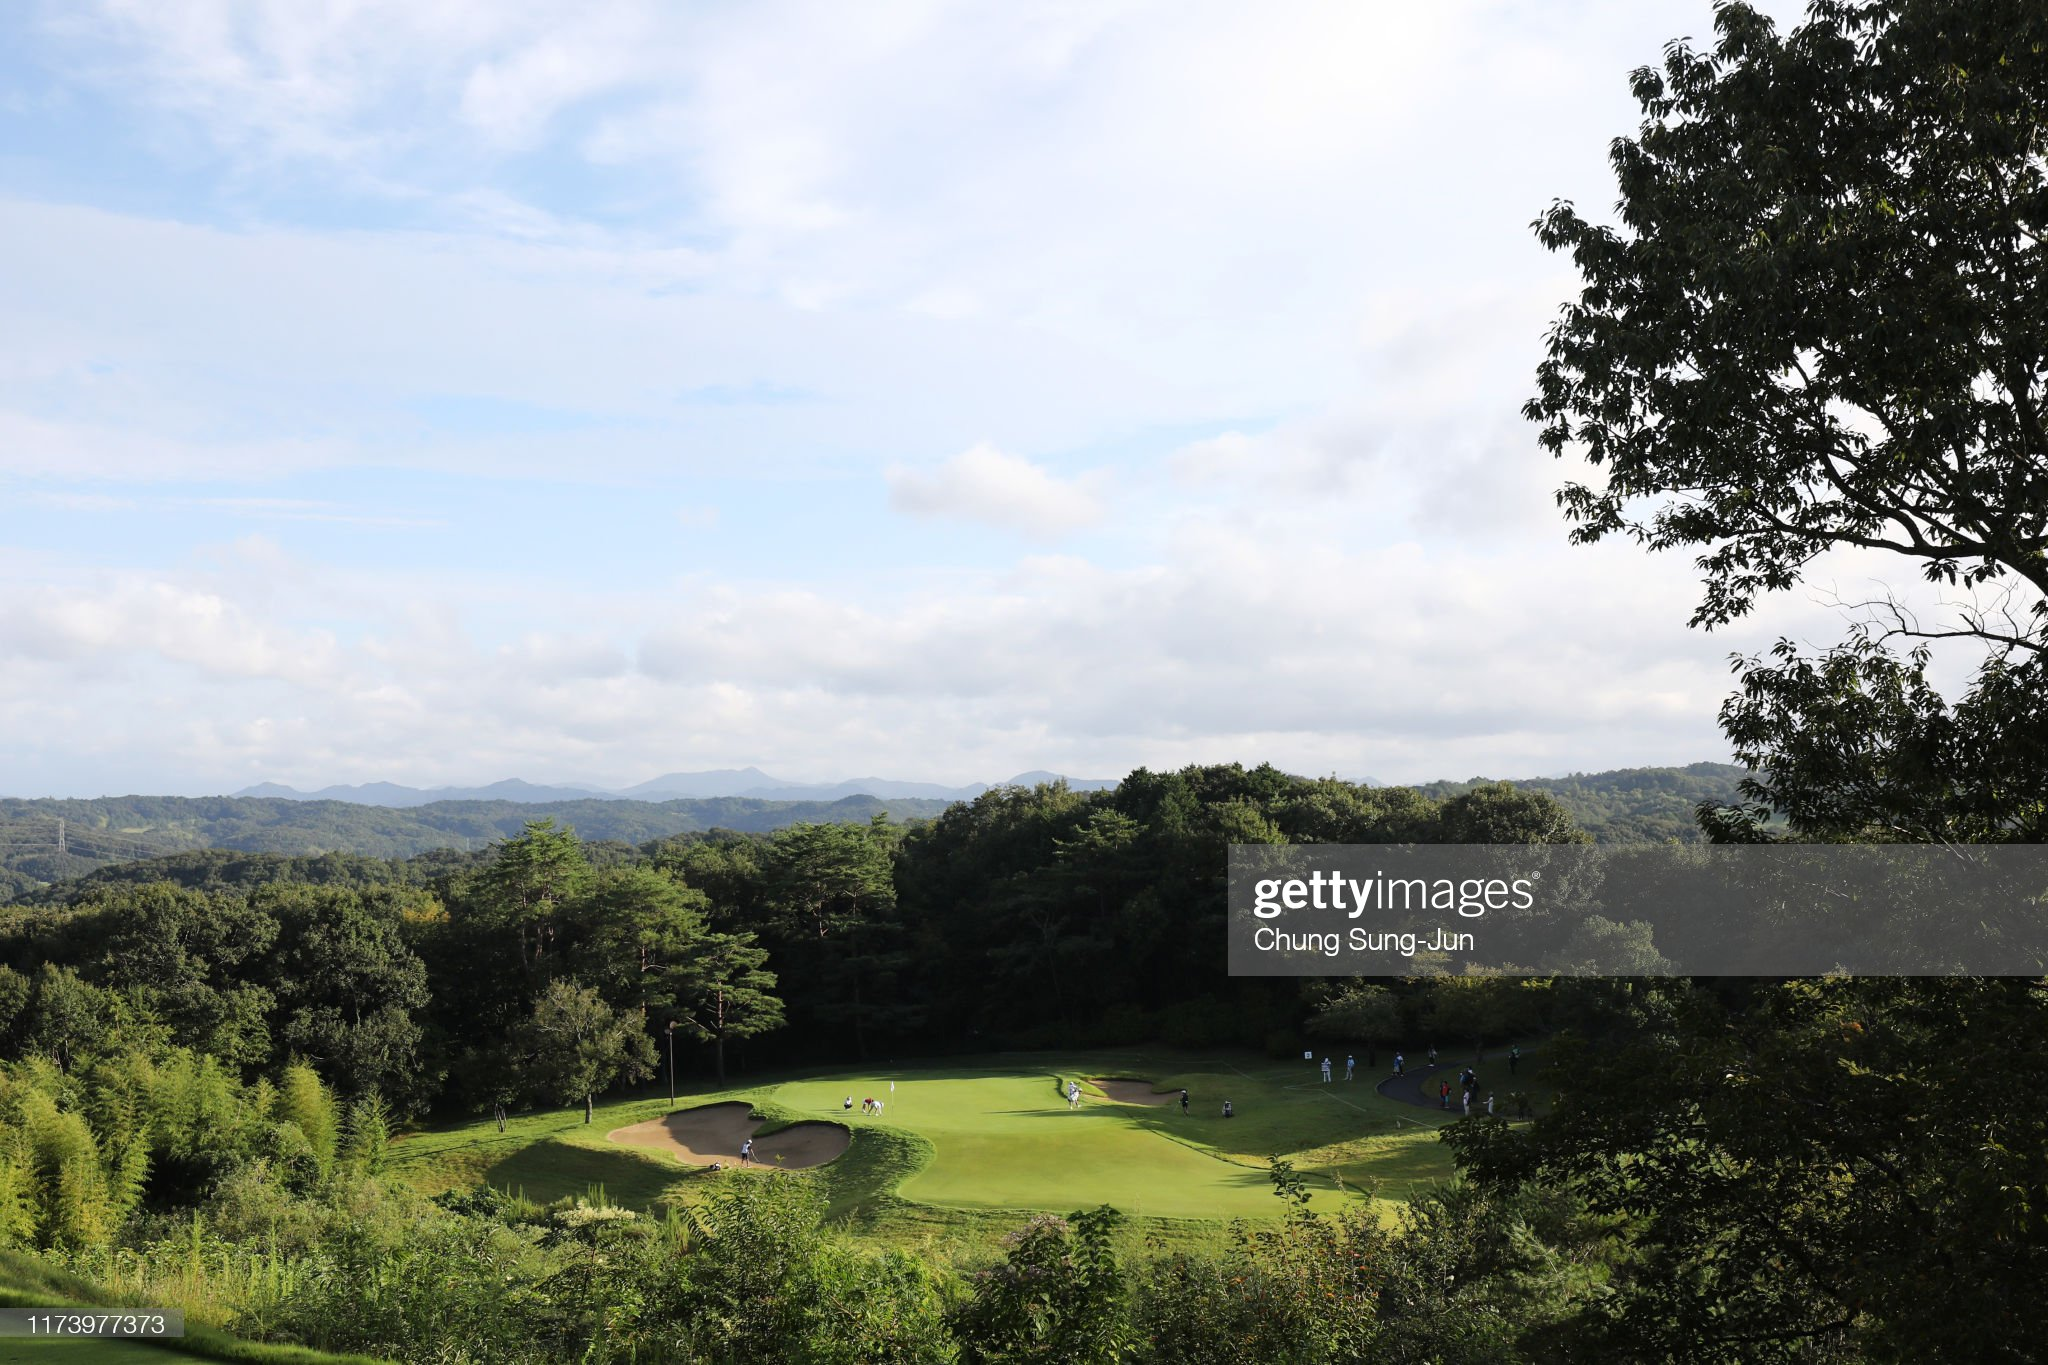 https://media.gettyimages.com/photos/general-view-of-the-2nd-green-during-the-first-round-of-the-52nd-lpga-picture-id1173977373?s=2048x2048